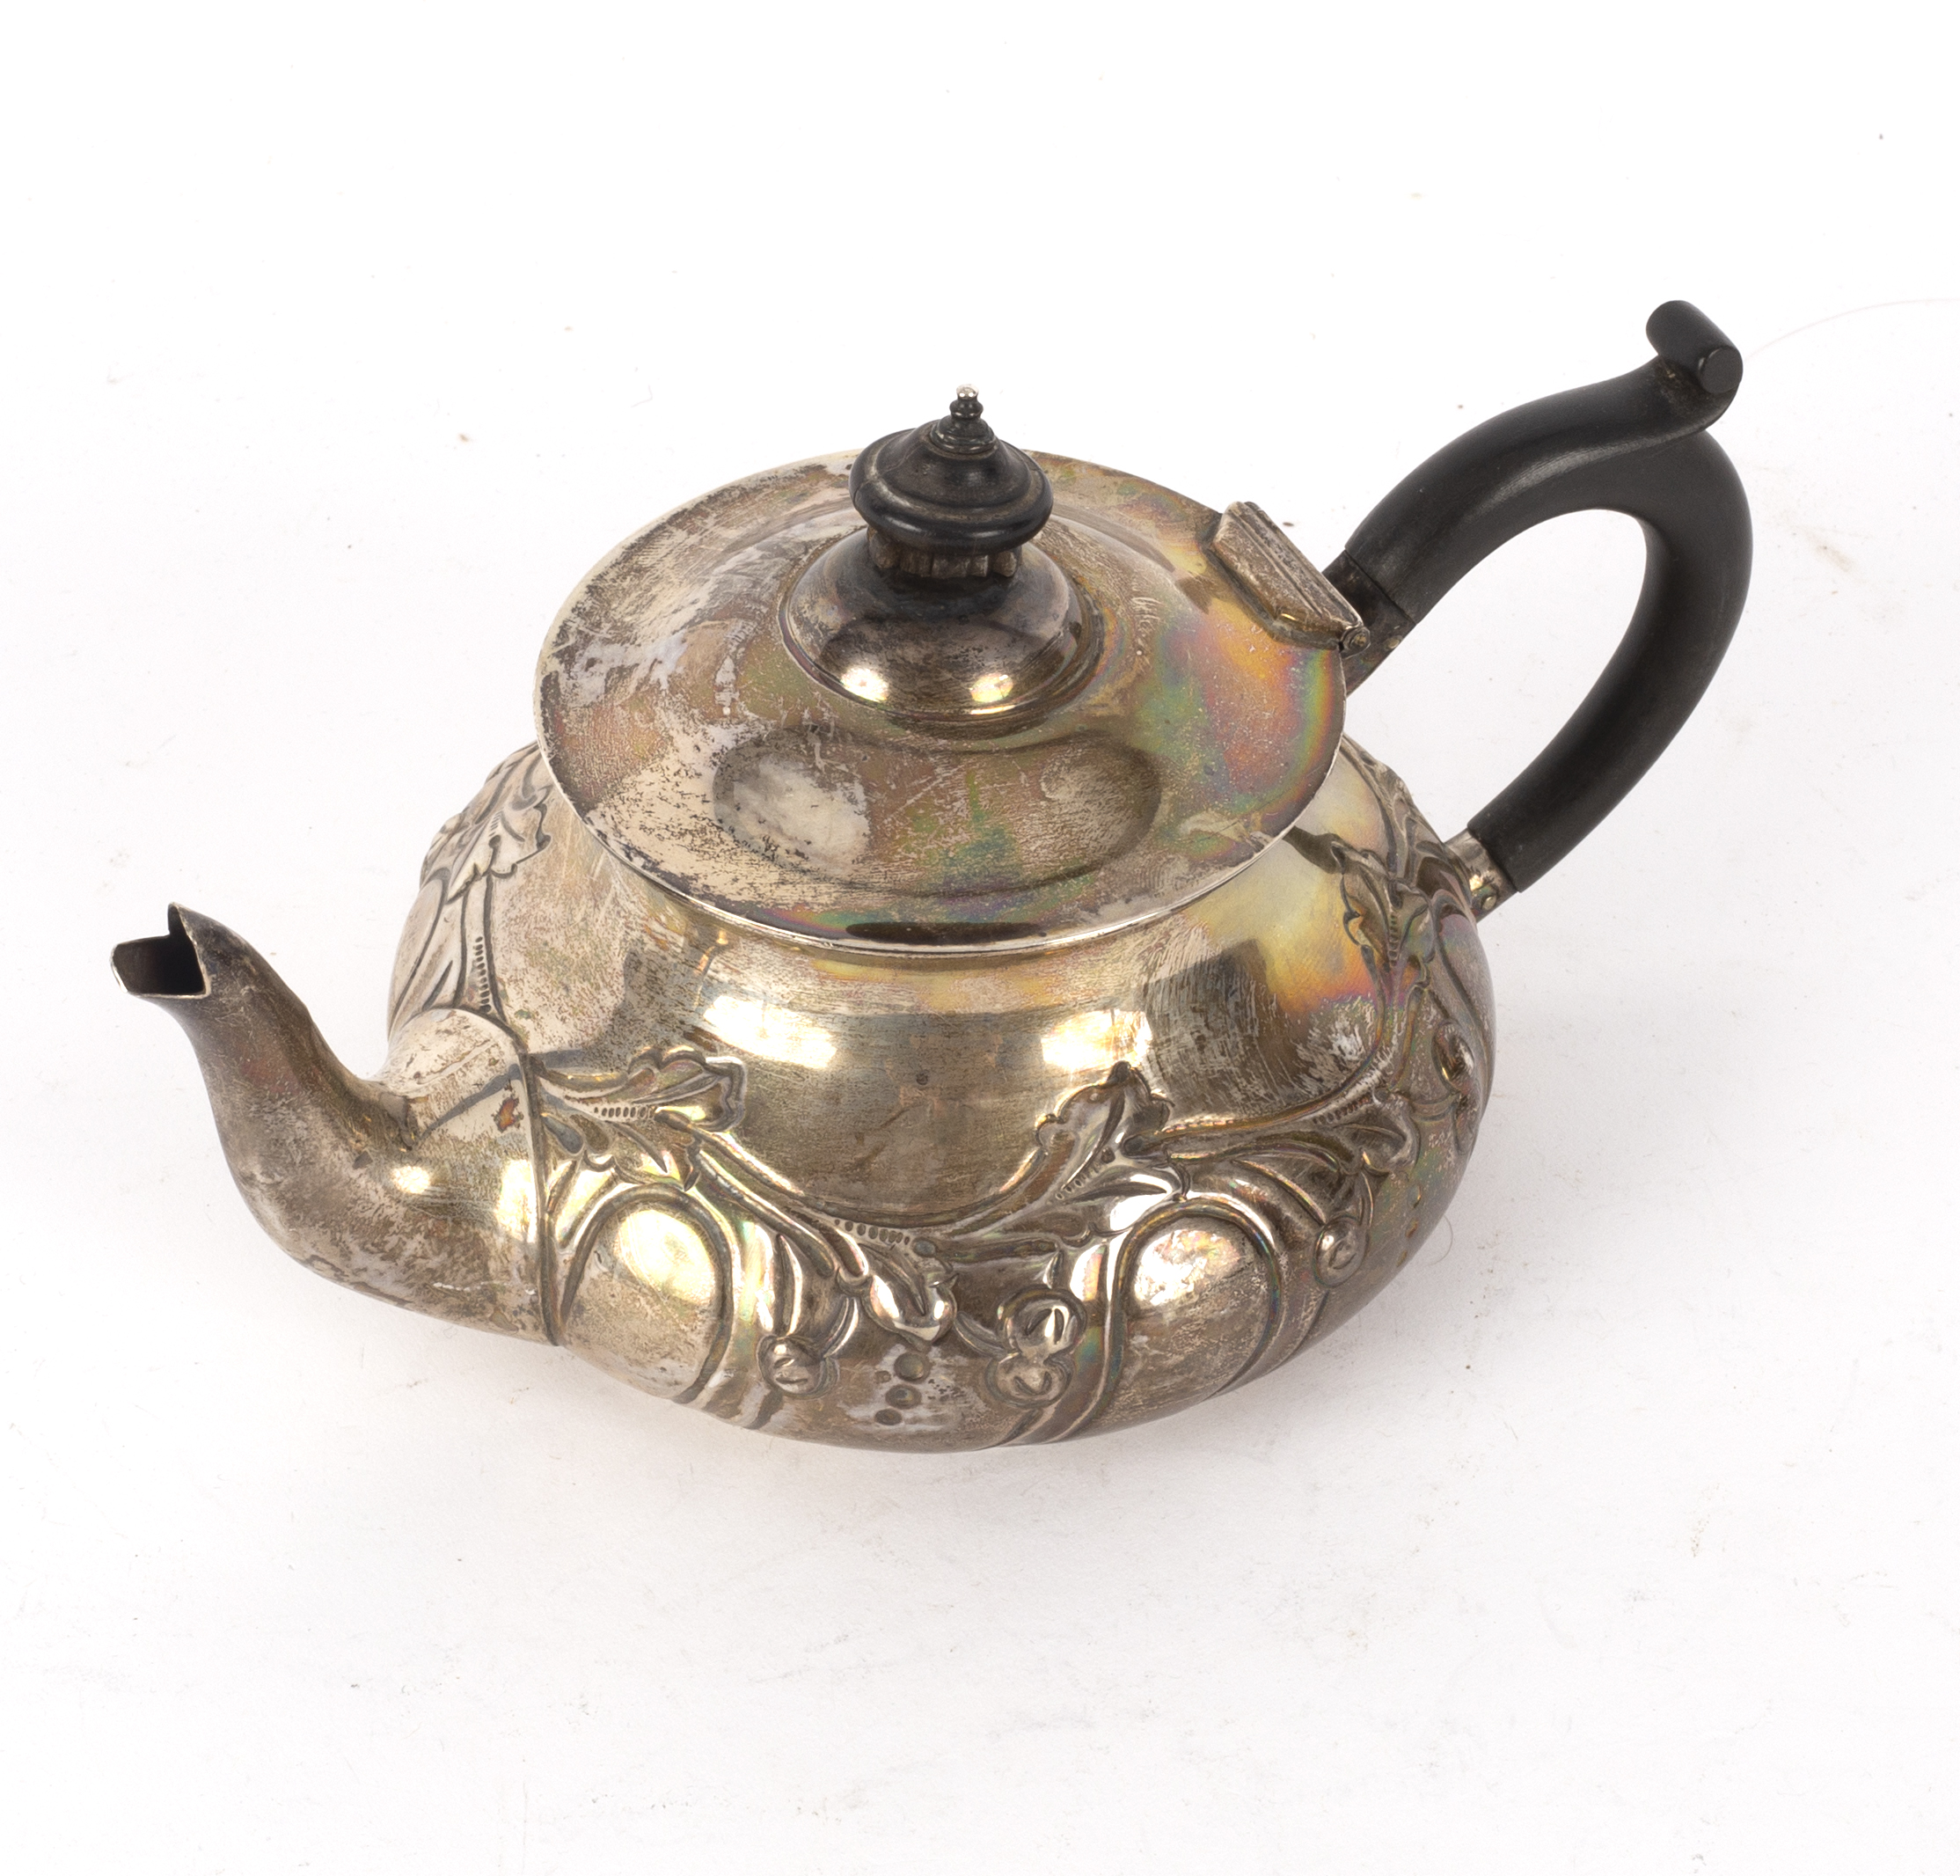 Lot 152 - A silver teapot, E & D, London 1905, of circular form embossed foliage,